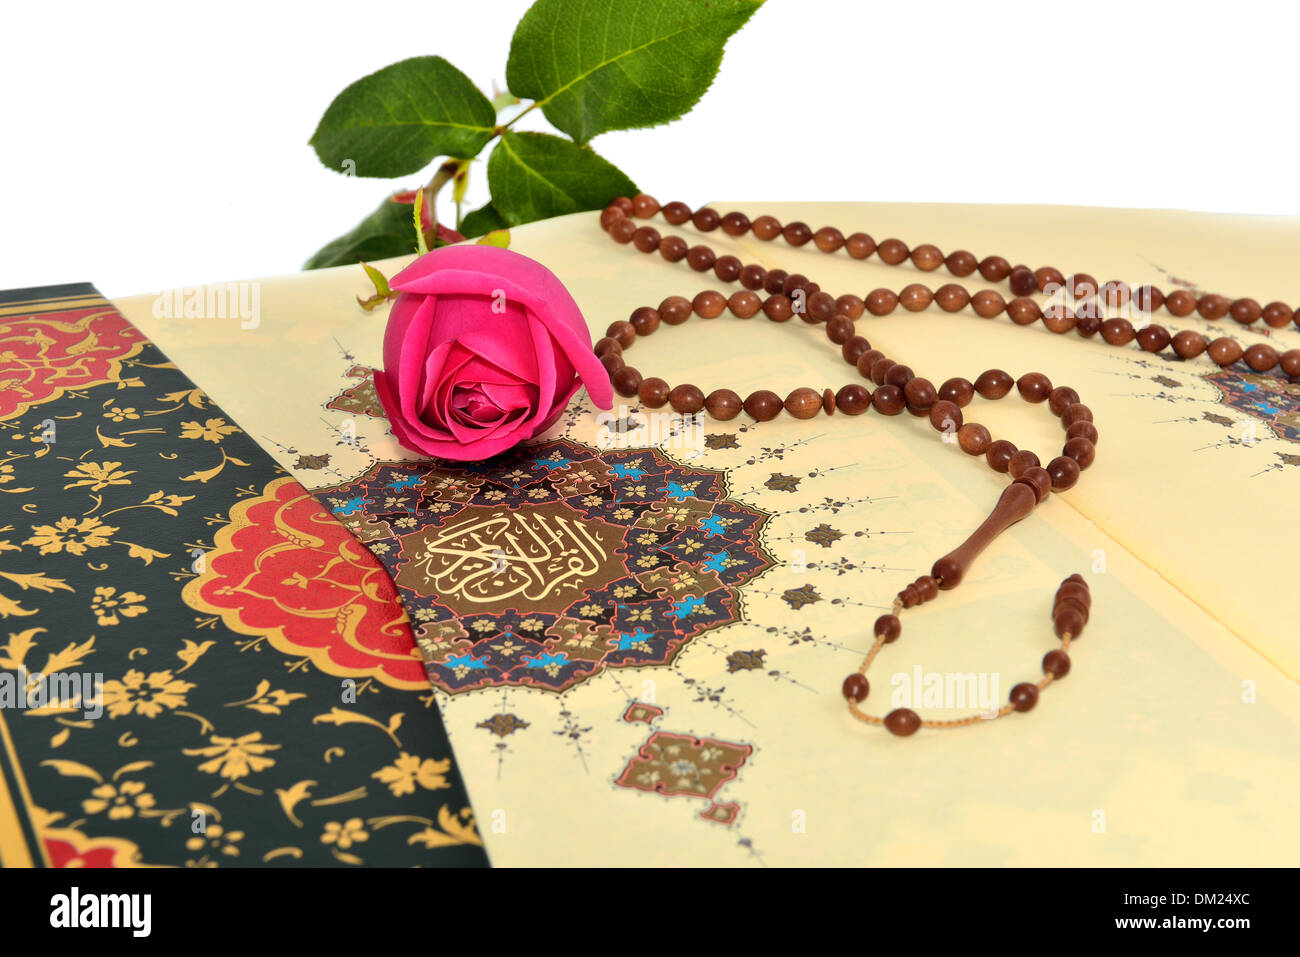 Quran Cover Stock Photos Quran Cover Stock Images Alamy